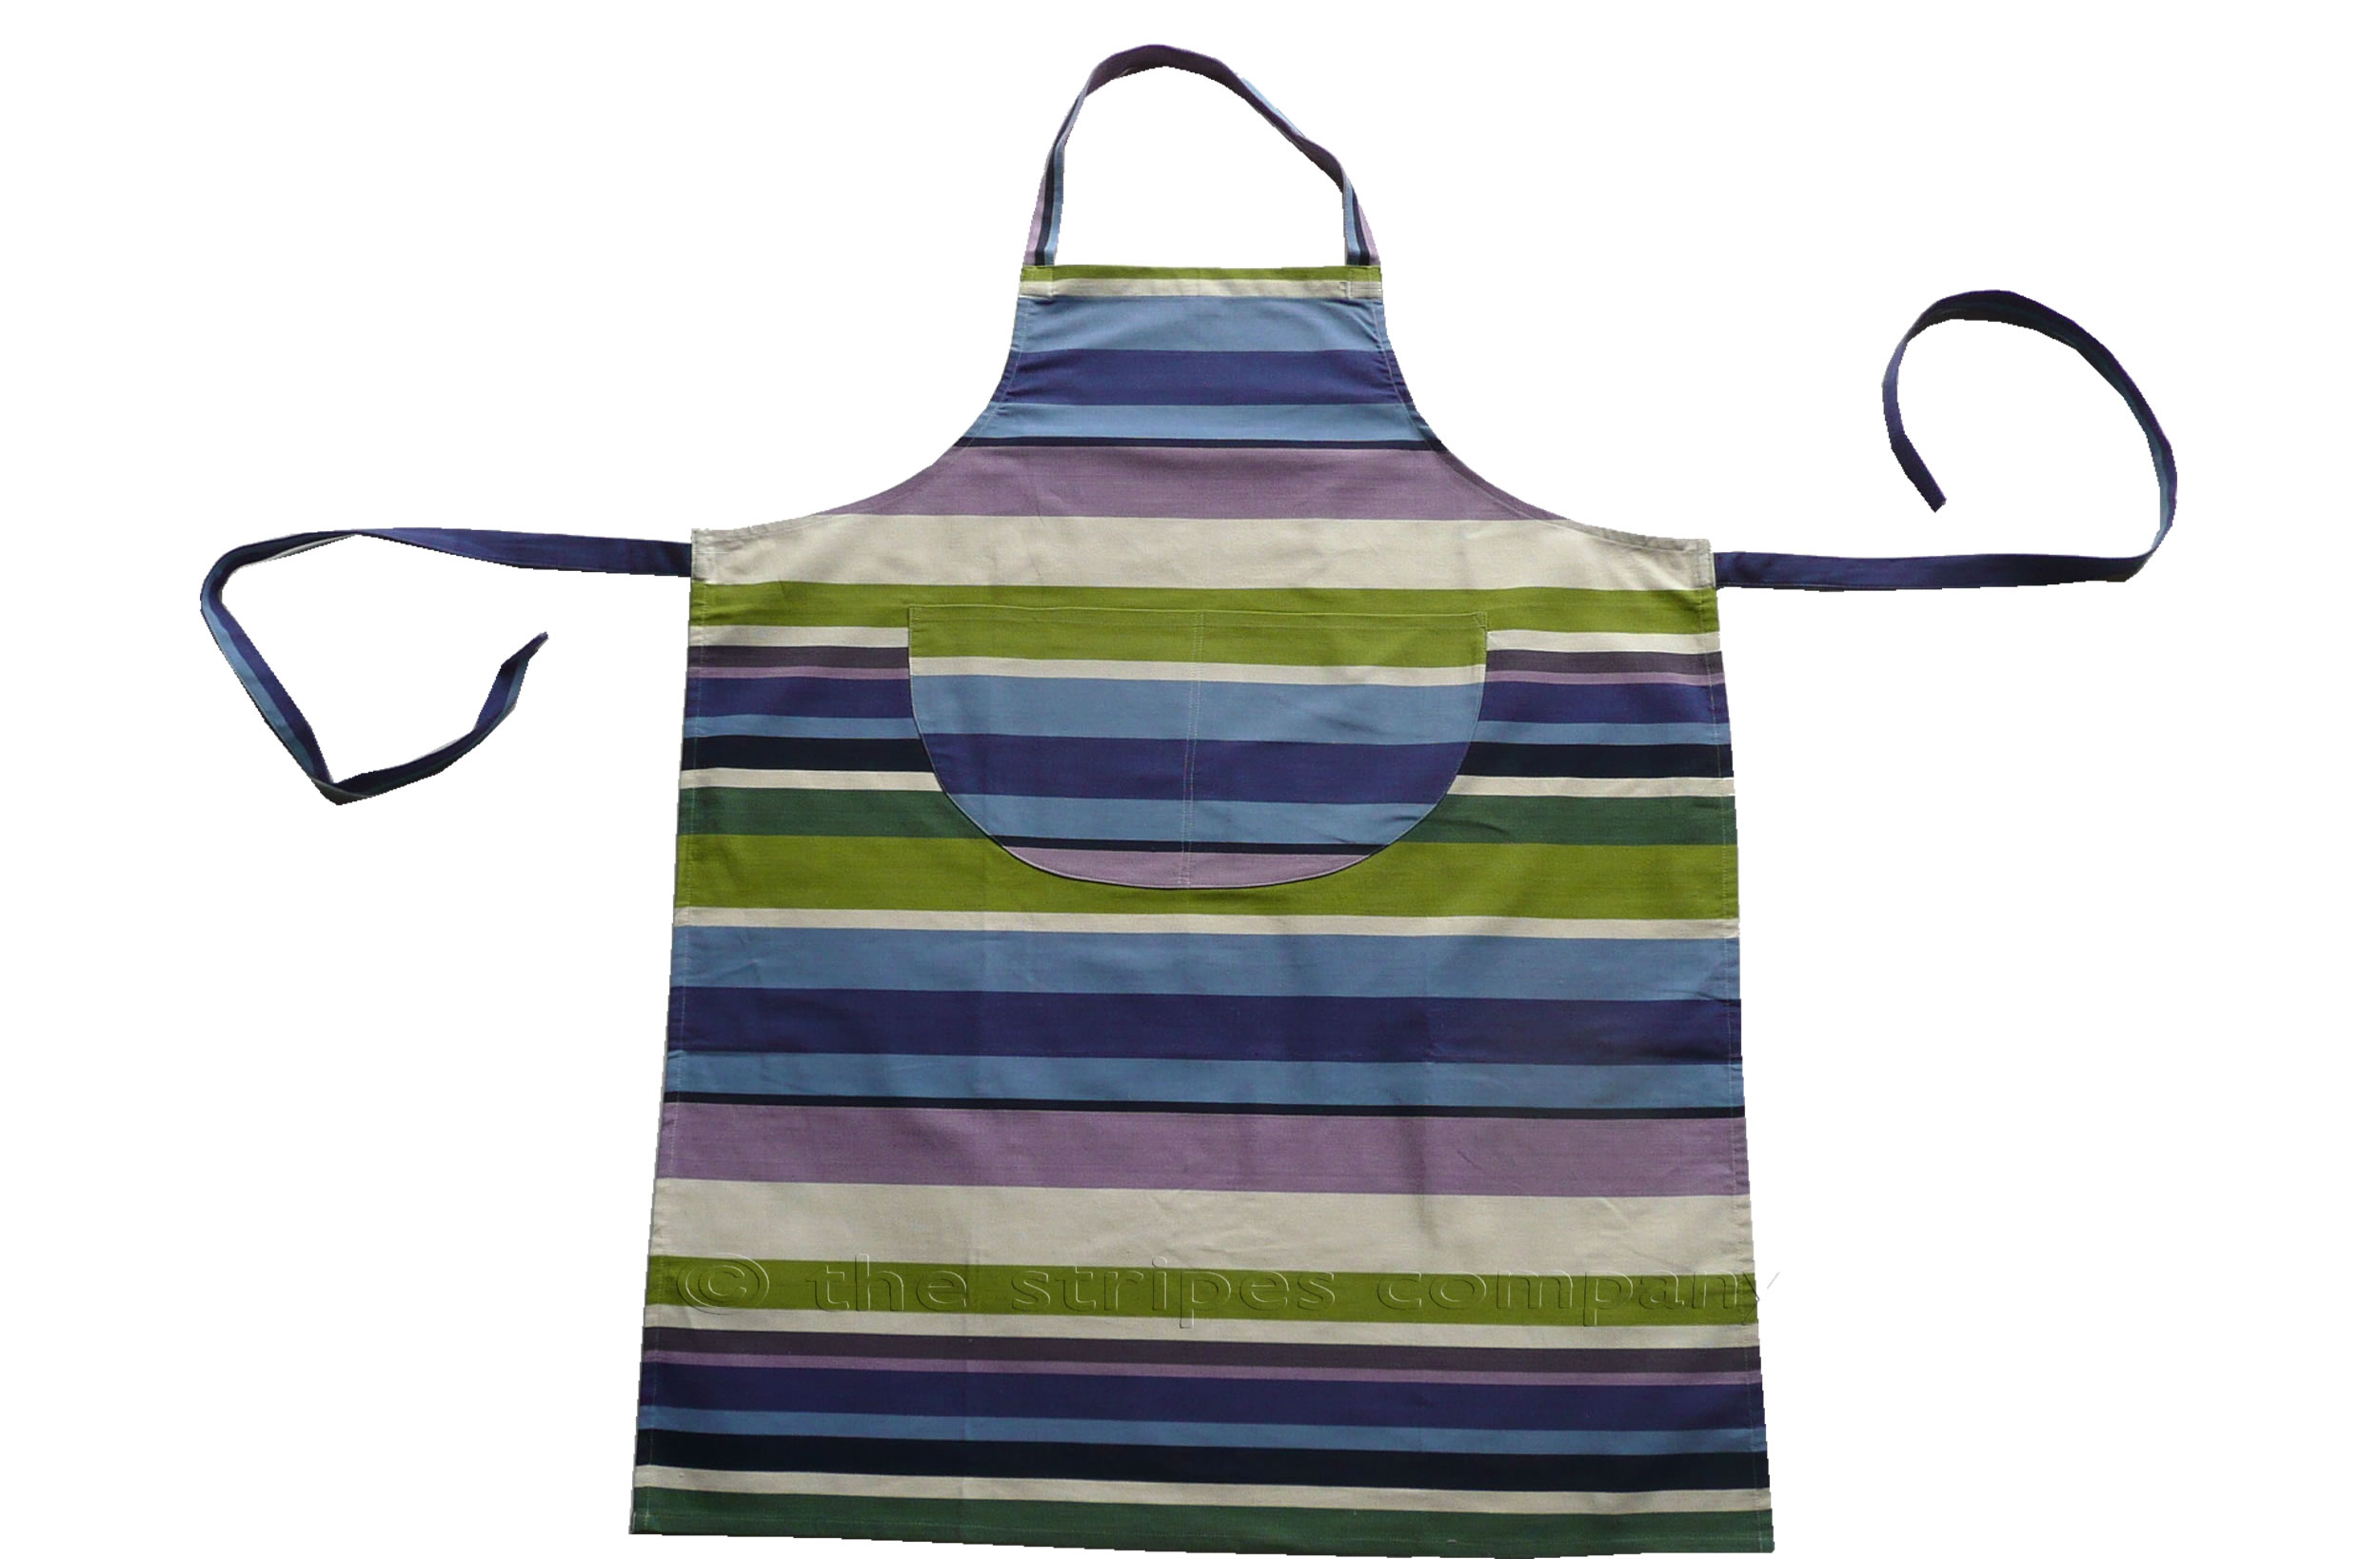 green, blue, purple - Striped Cotton Aprons